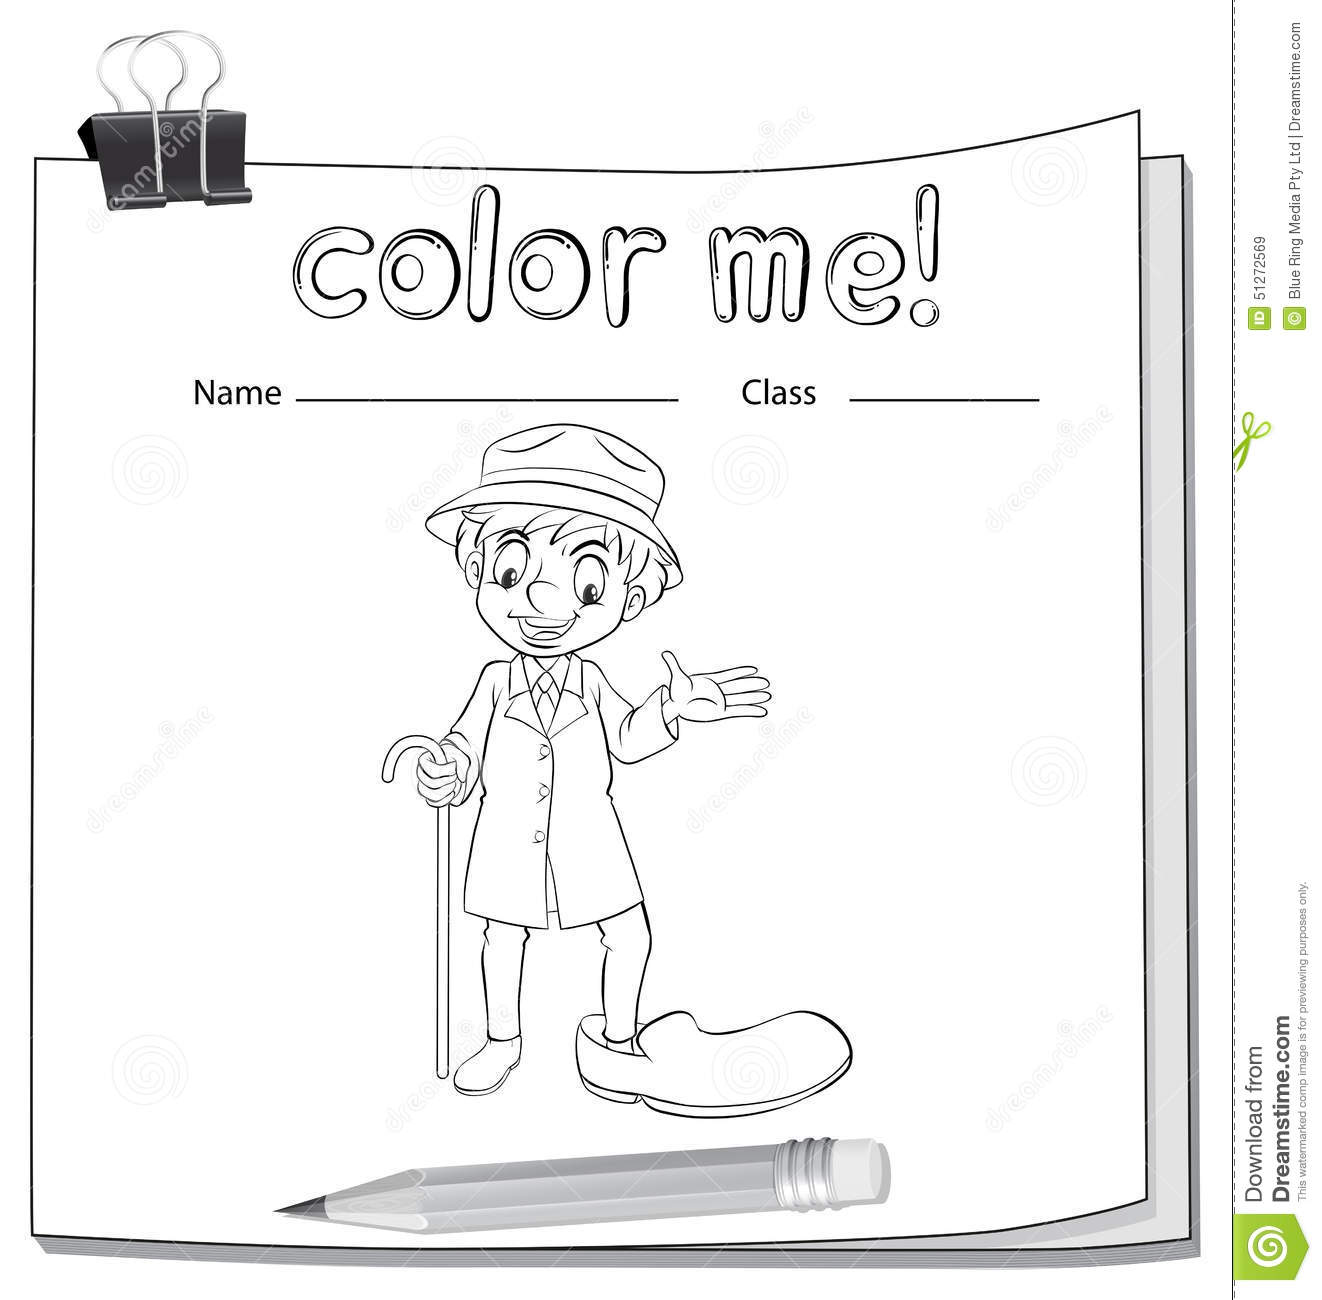 Coloring Worksheet With An Old Man Stock Vector